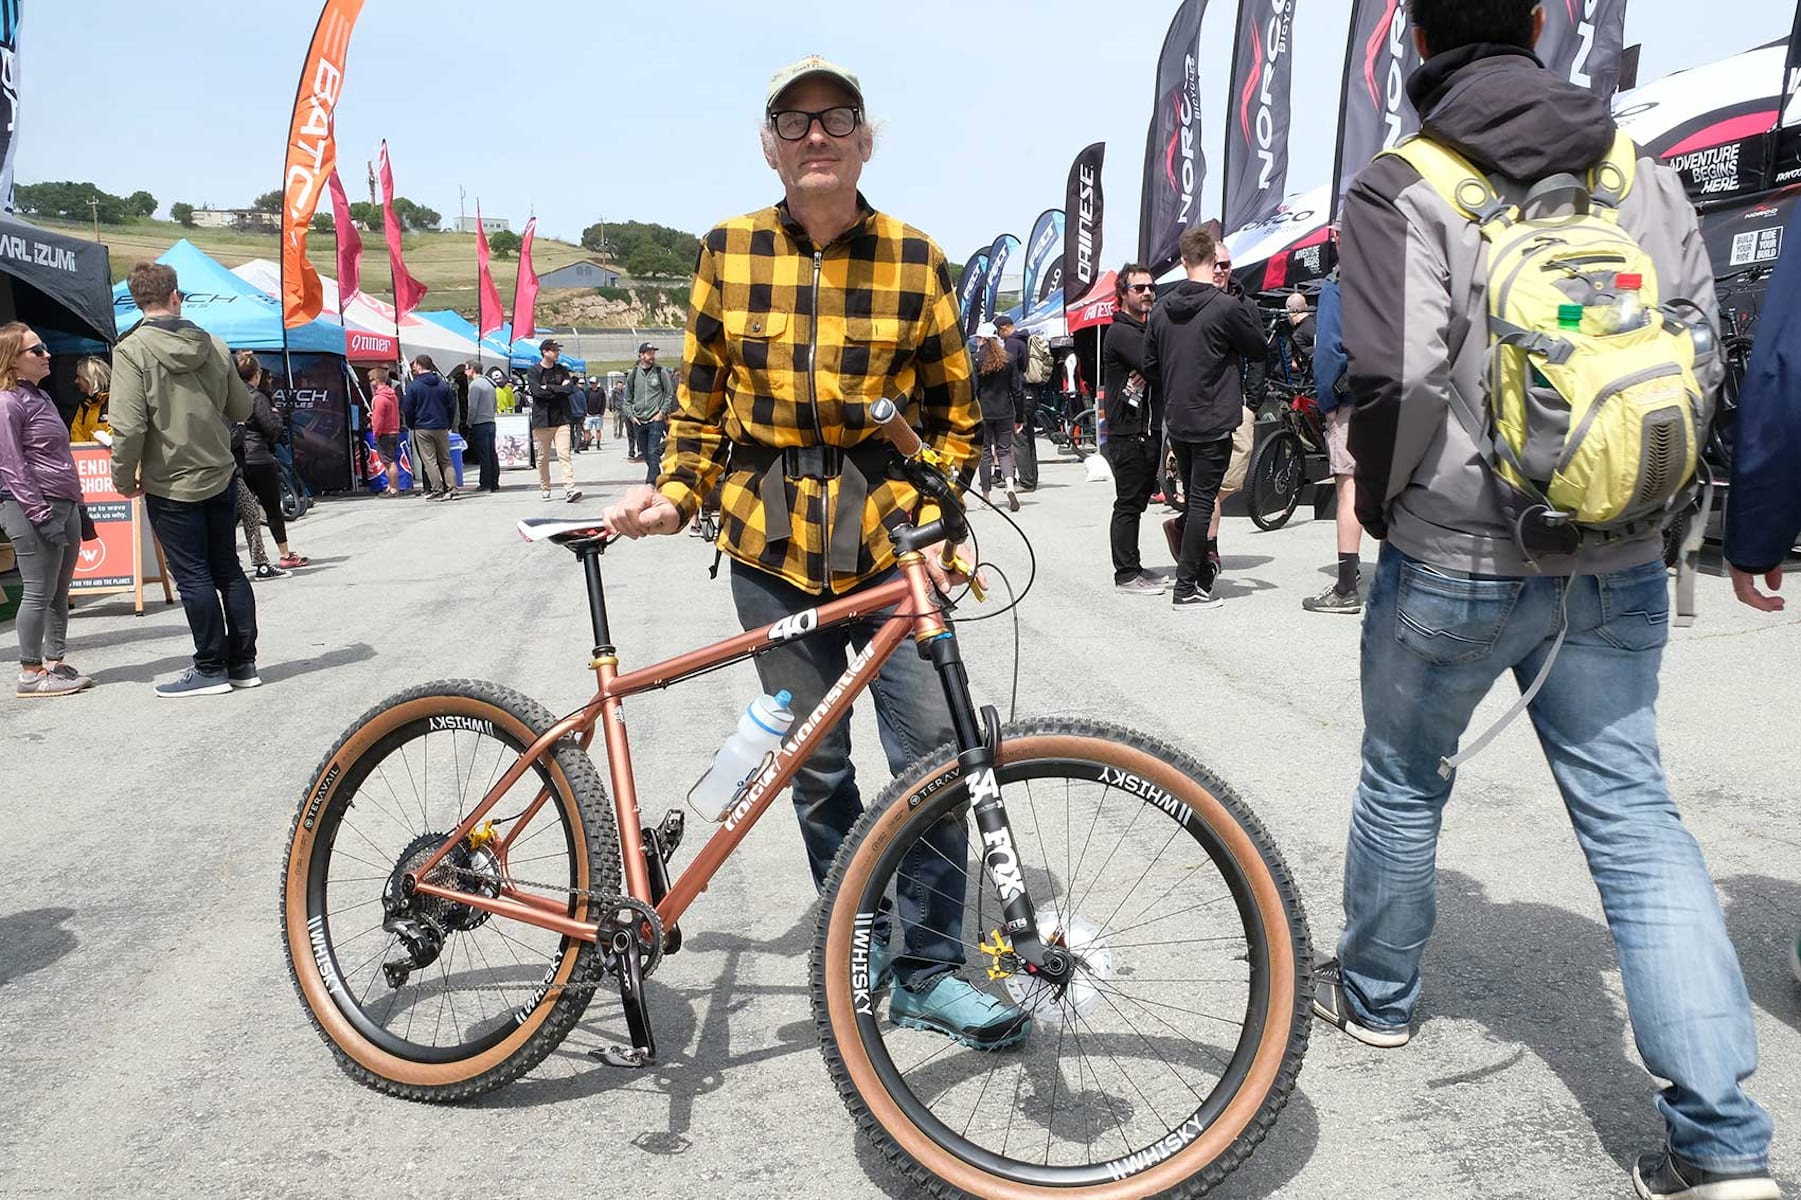 sea otter classic 2019, new products, paul sadoff, rock lobster